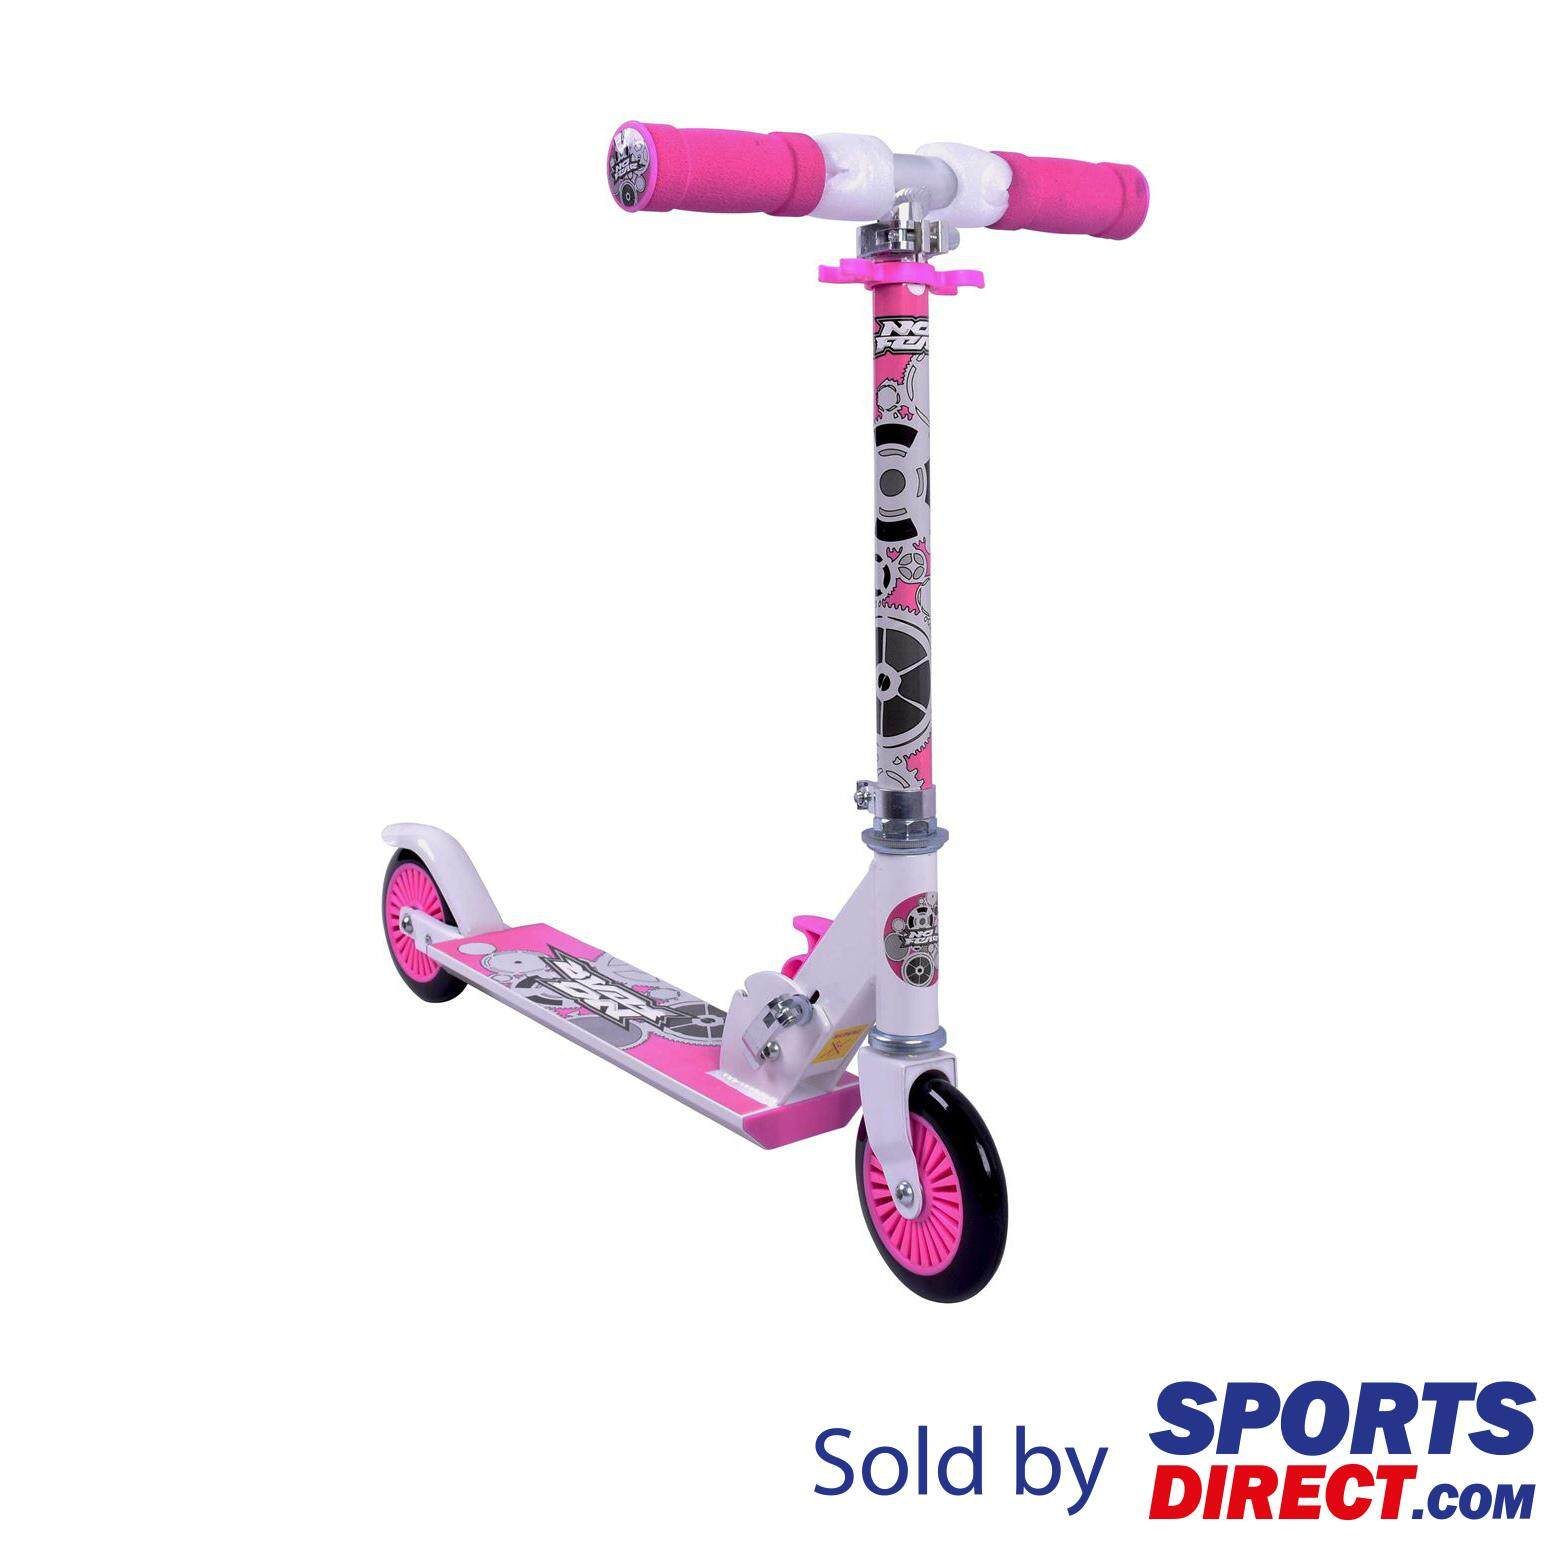 No Fear Kids Scooter (black/pink) By Sports Direct Mst Sdn Bhd.